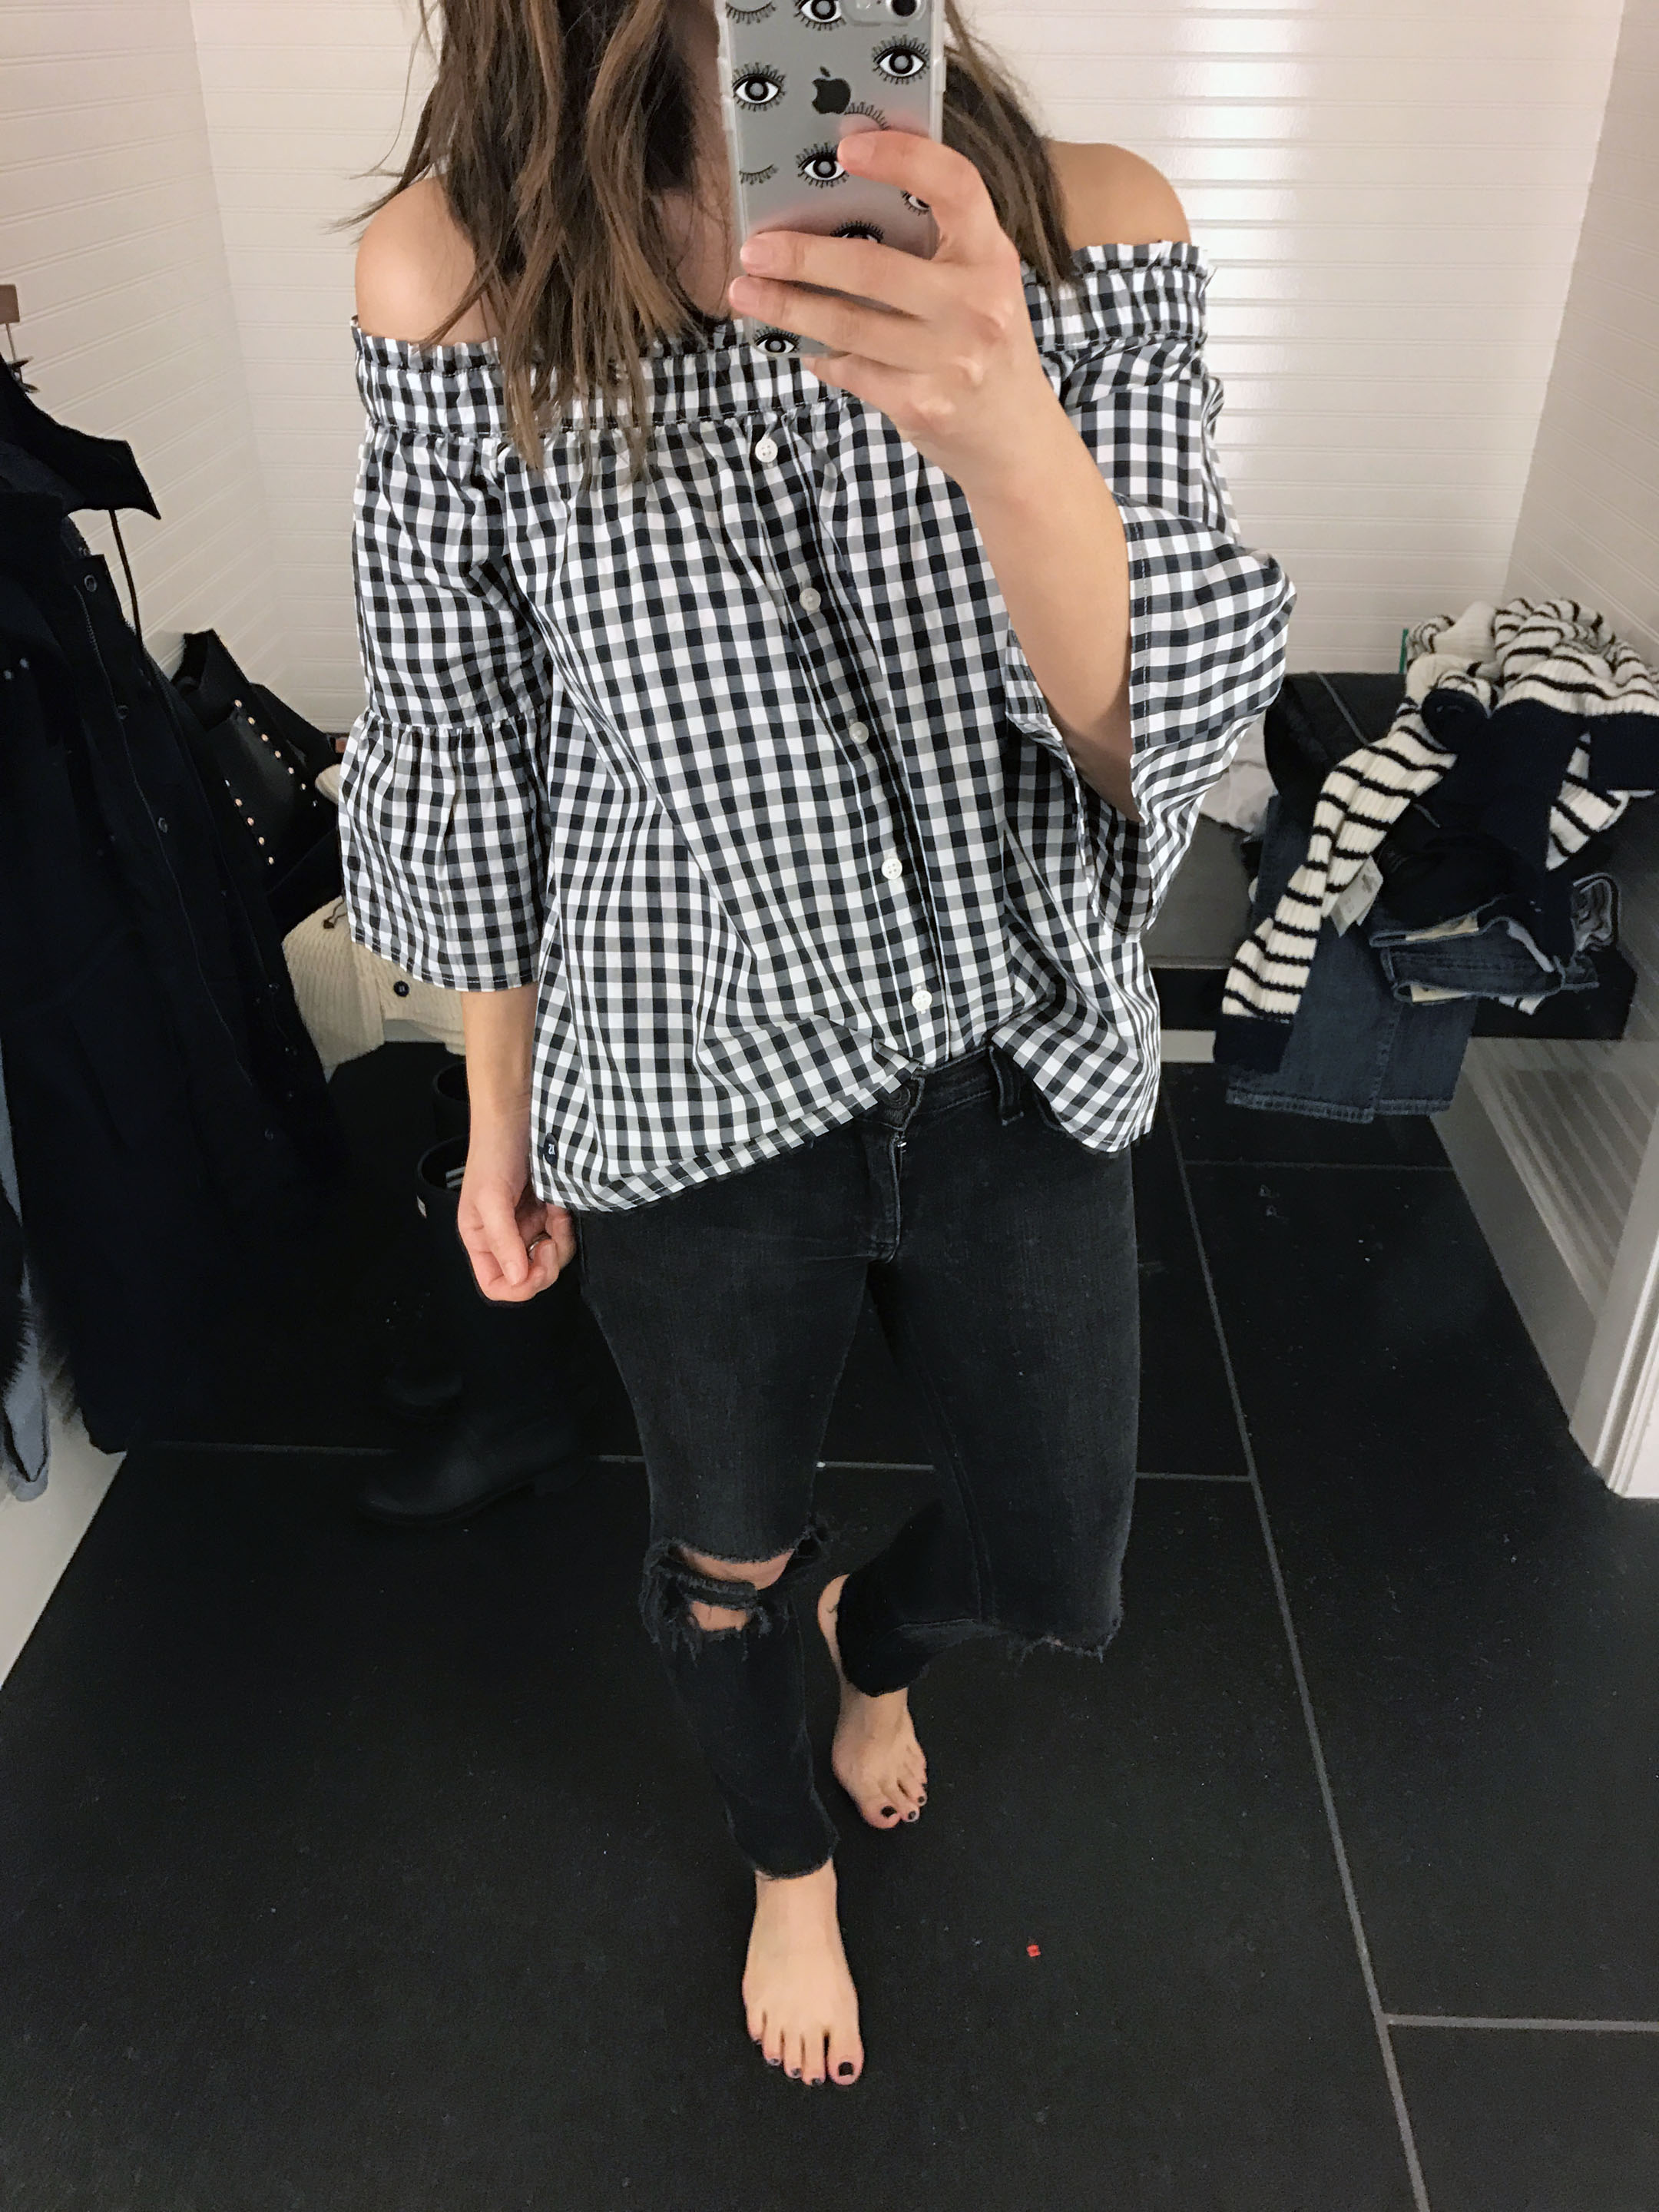 abercrombie & Fitch gingham top